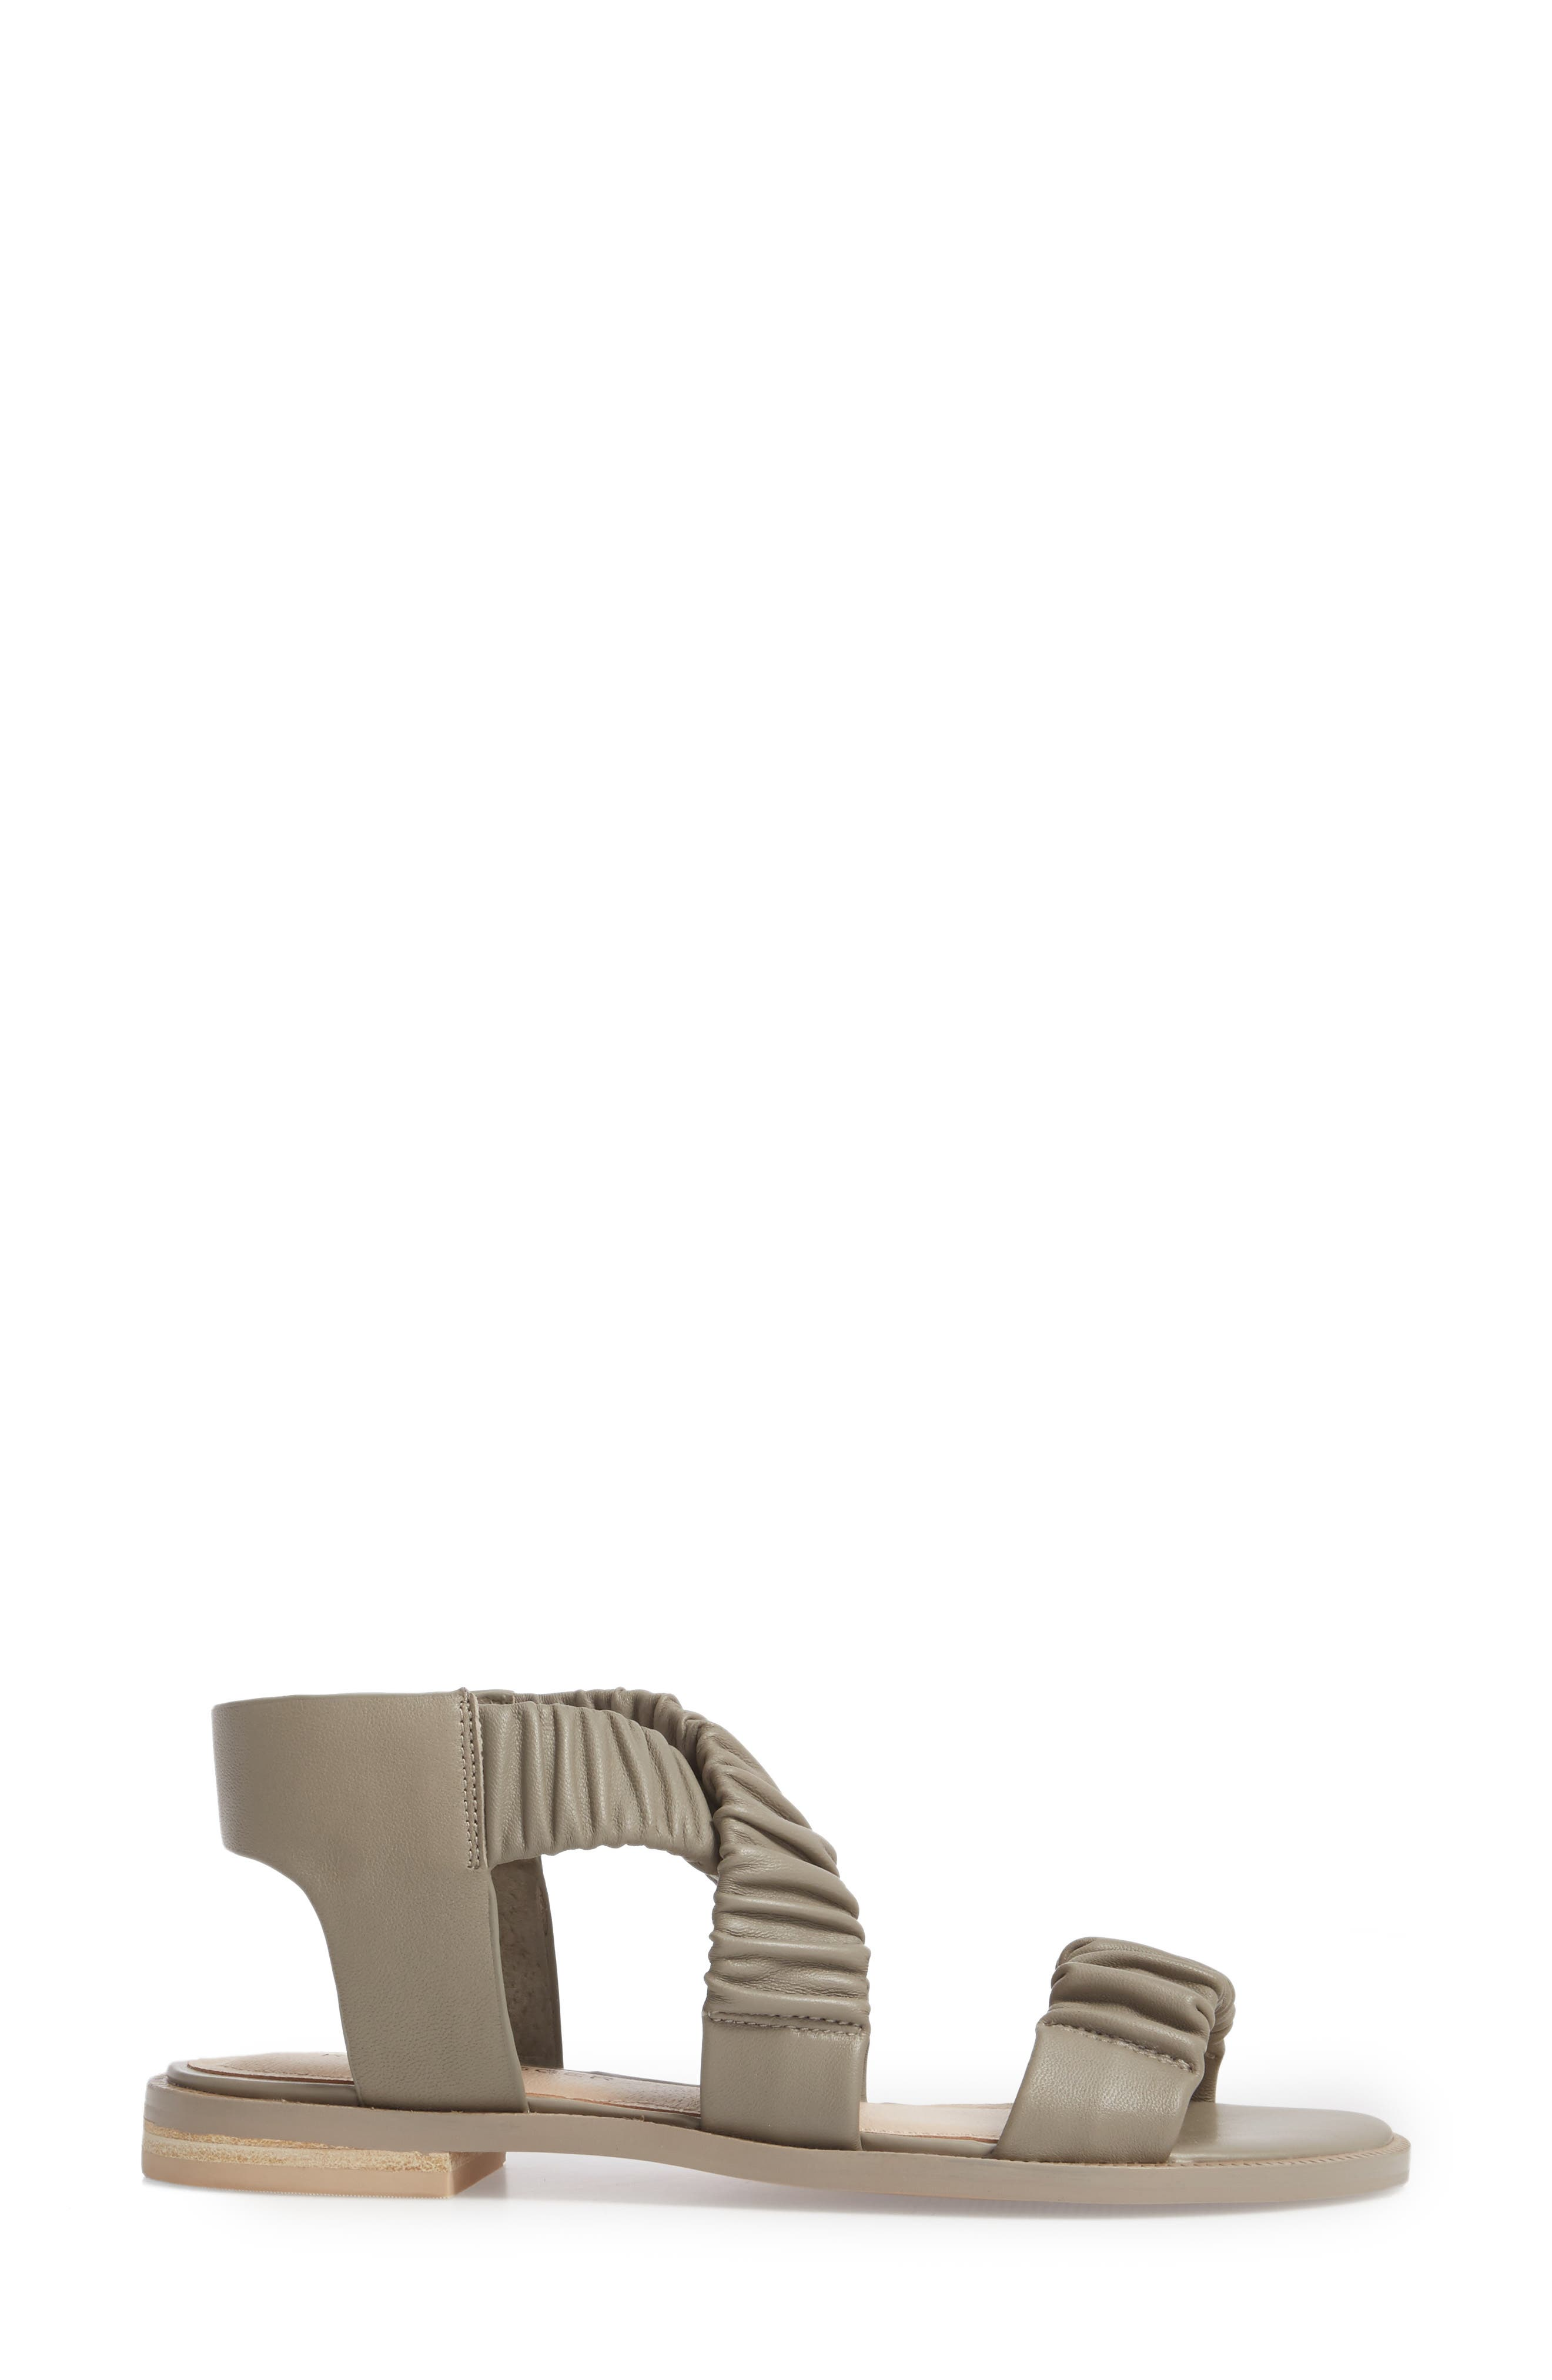 Ryder Pleated Flat Sandal,                             Alternate thumbnail 8, color,